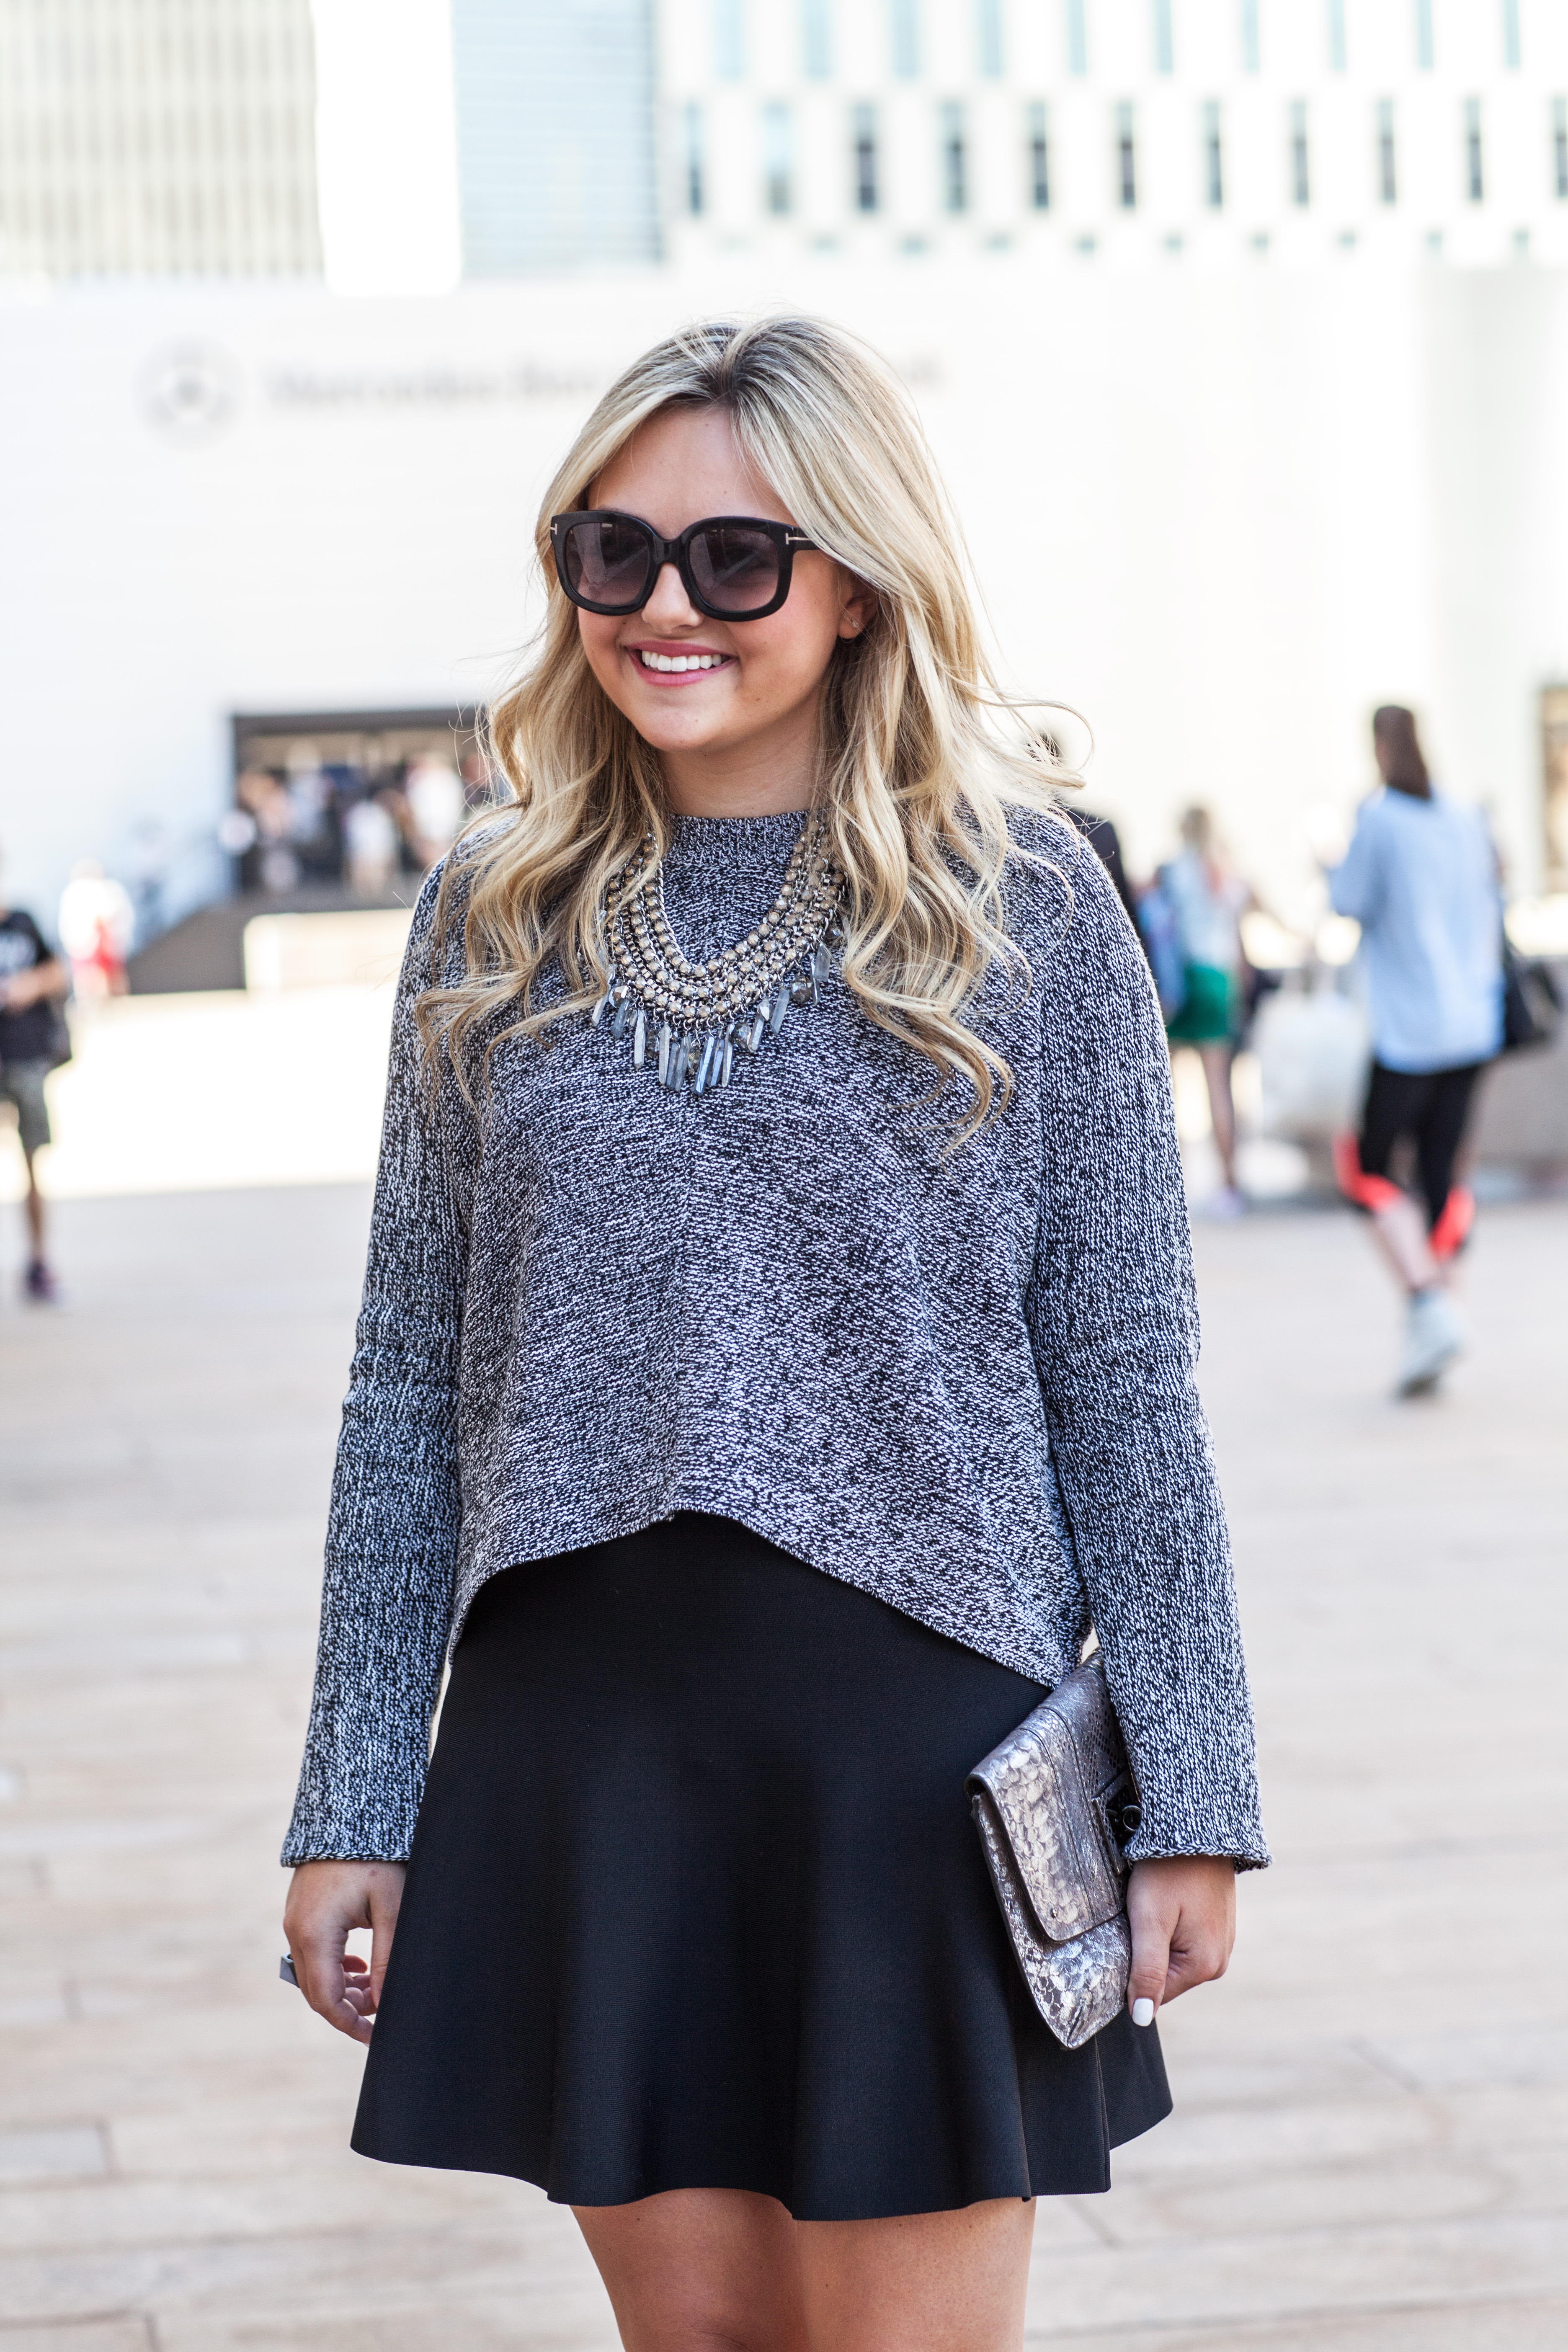 Sweaters & Skirts — bows & sequins